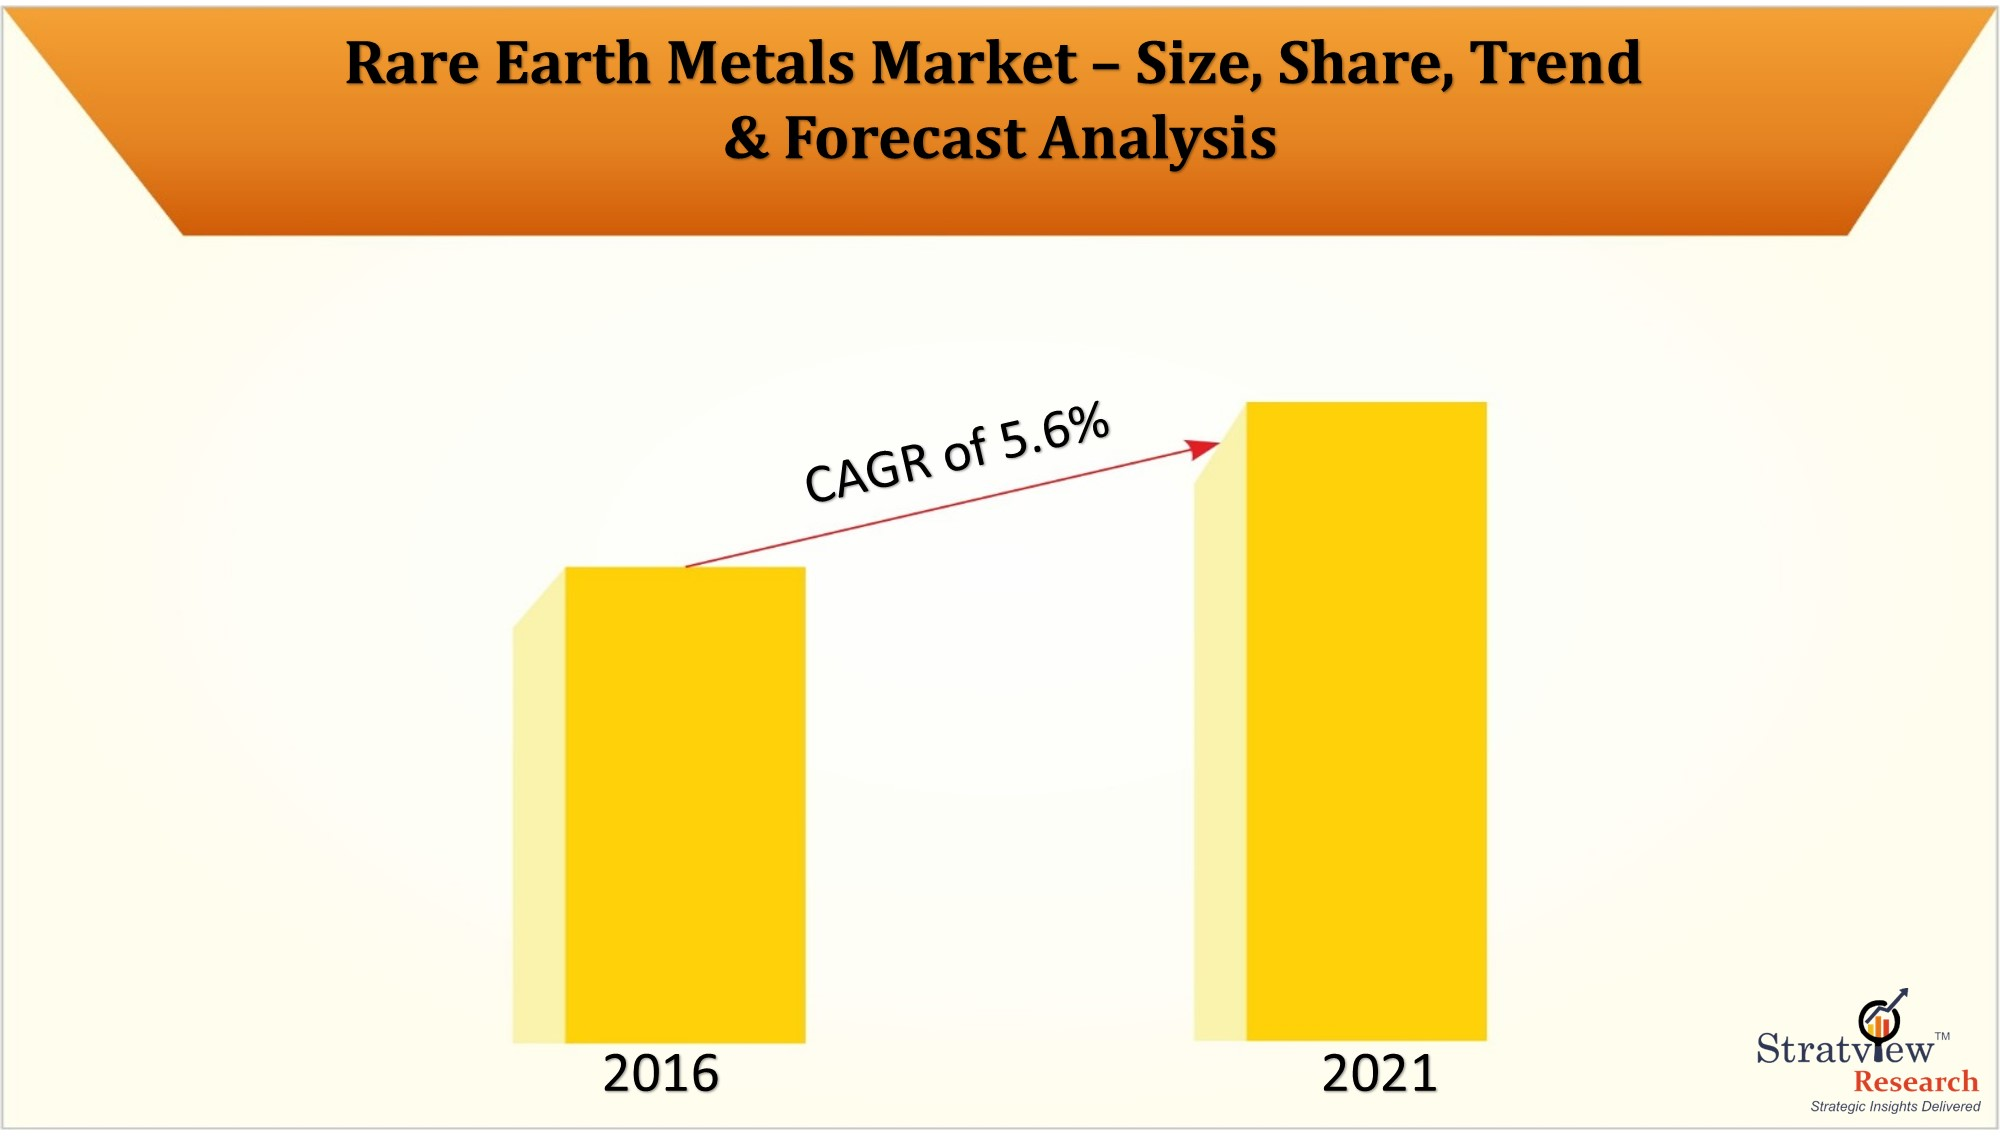 The changing dynamics in Rare Earth Metals Market with covid-19 impact assessment